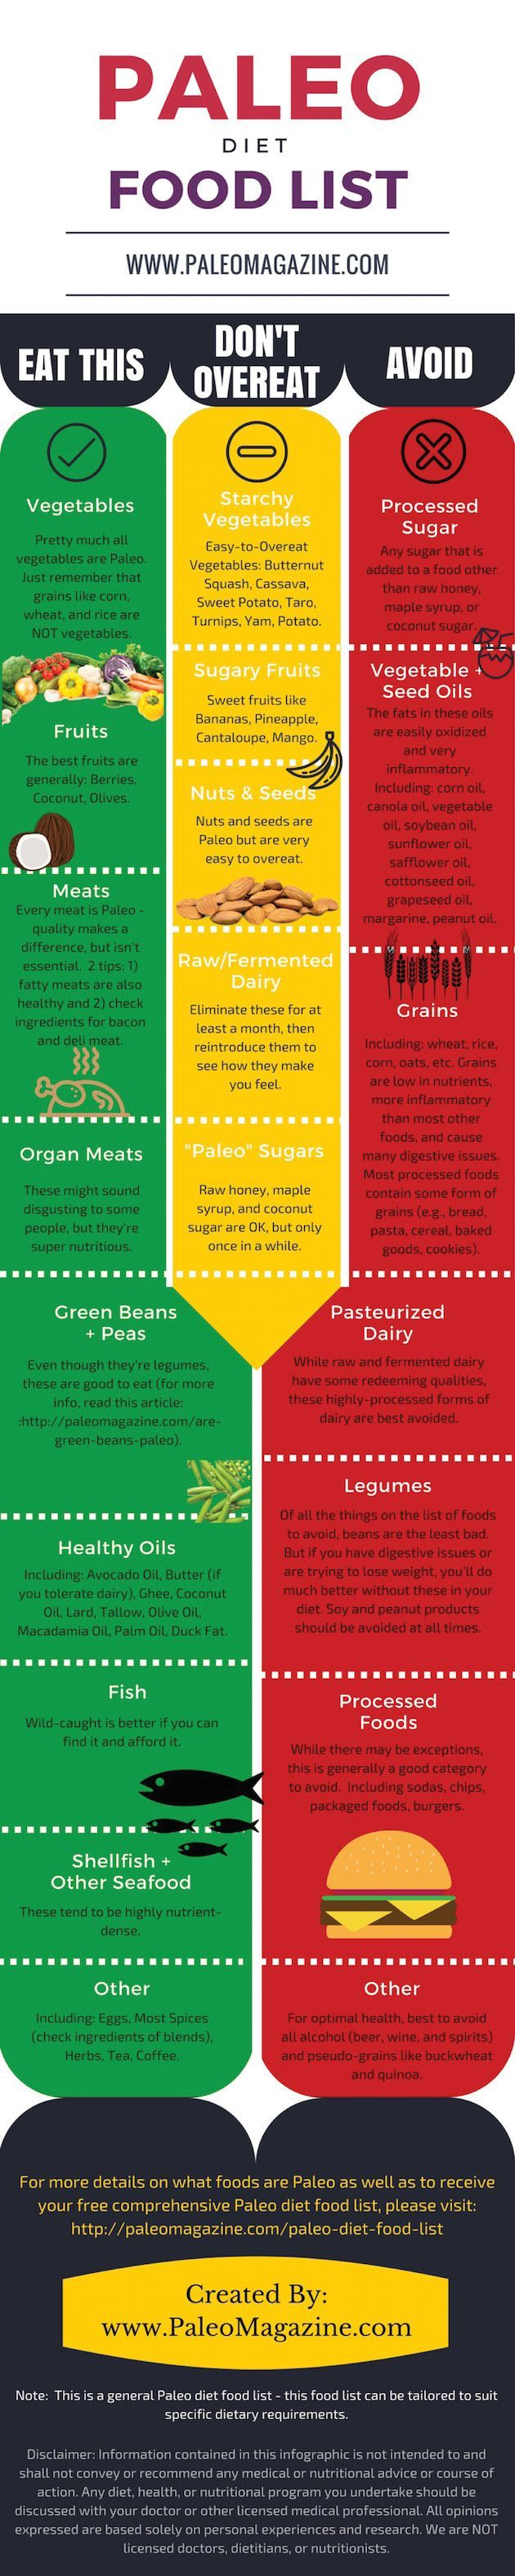 See more here ► https://www.youtube.com/watch?v=t6ic0NKYUMU Tags: i need to lose belly fat, how can i lose belly fat fast at home, what foods to eat to lose belly fat - Paleo Diet Food List Infographic Image #exercise #diet #workout #fitness #health